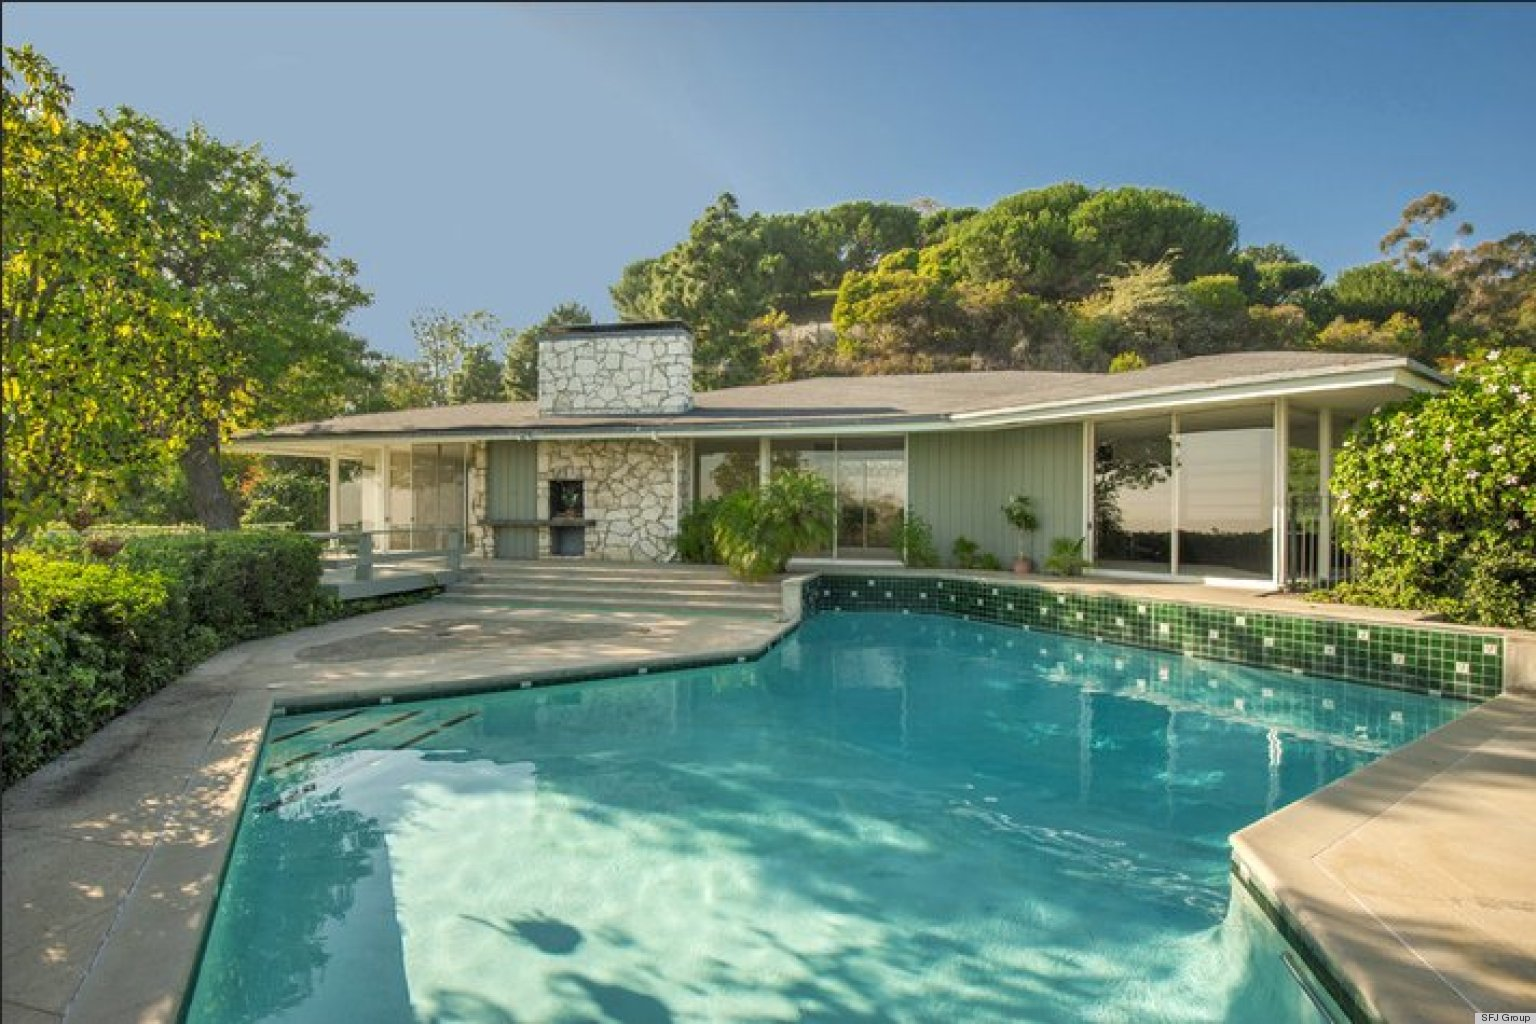 pacific palasaides women Robert wagner news find breaking  sitting in the sunlit garden of his pacific palisades  she stood in complete opposition to the '50s bombshell women.